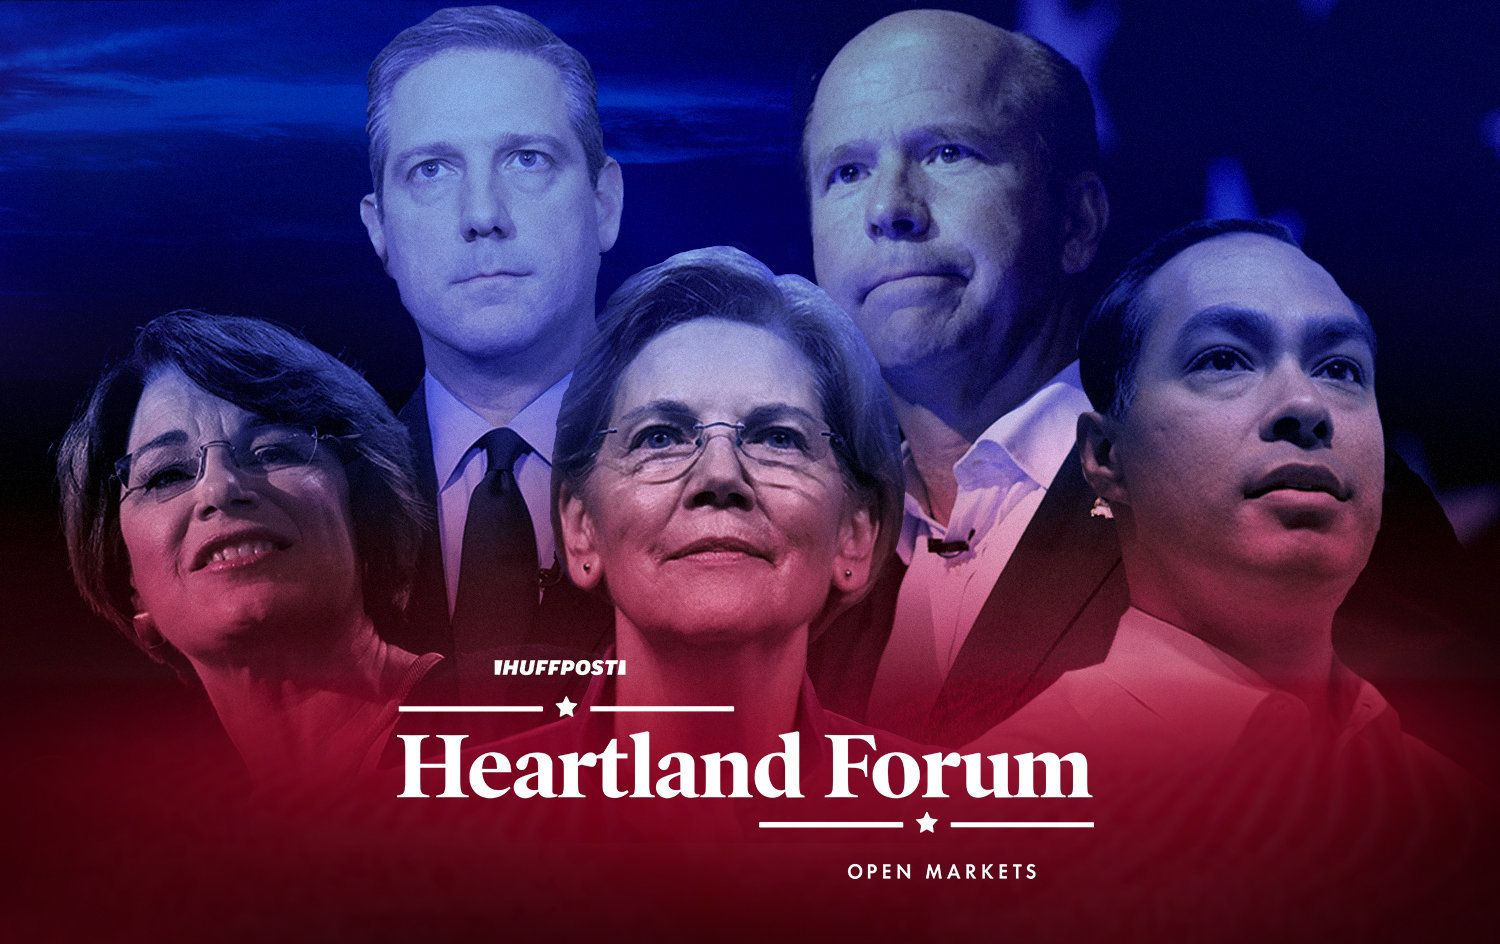 Heartland Forum candidates and branding